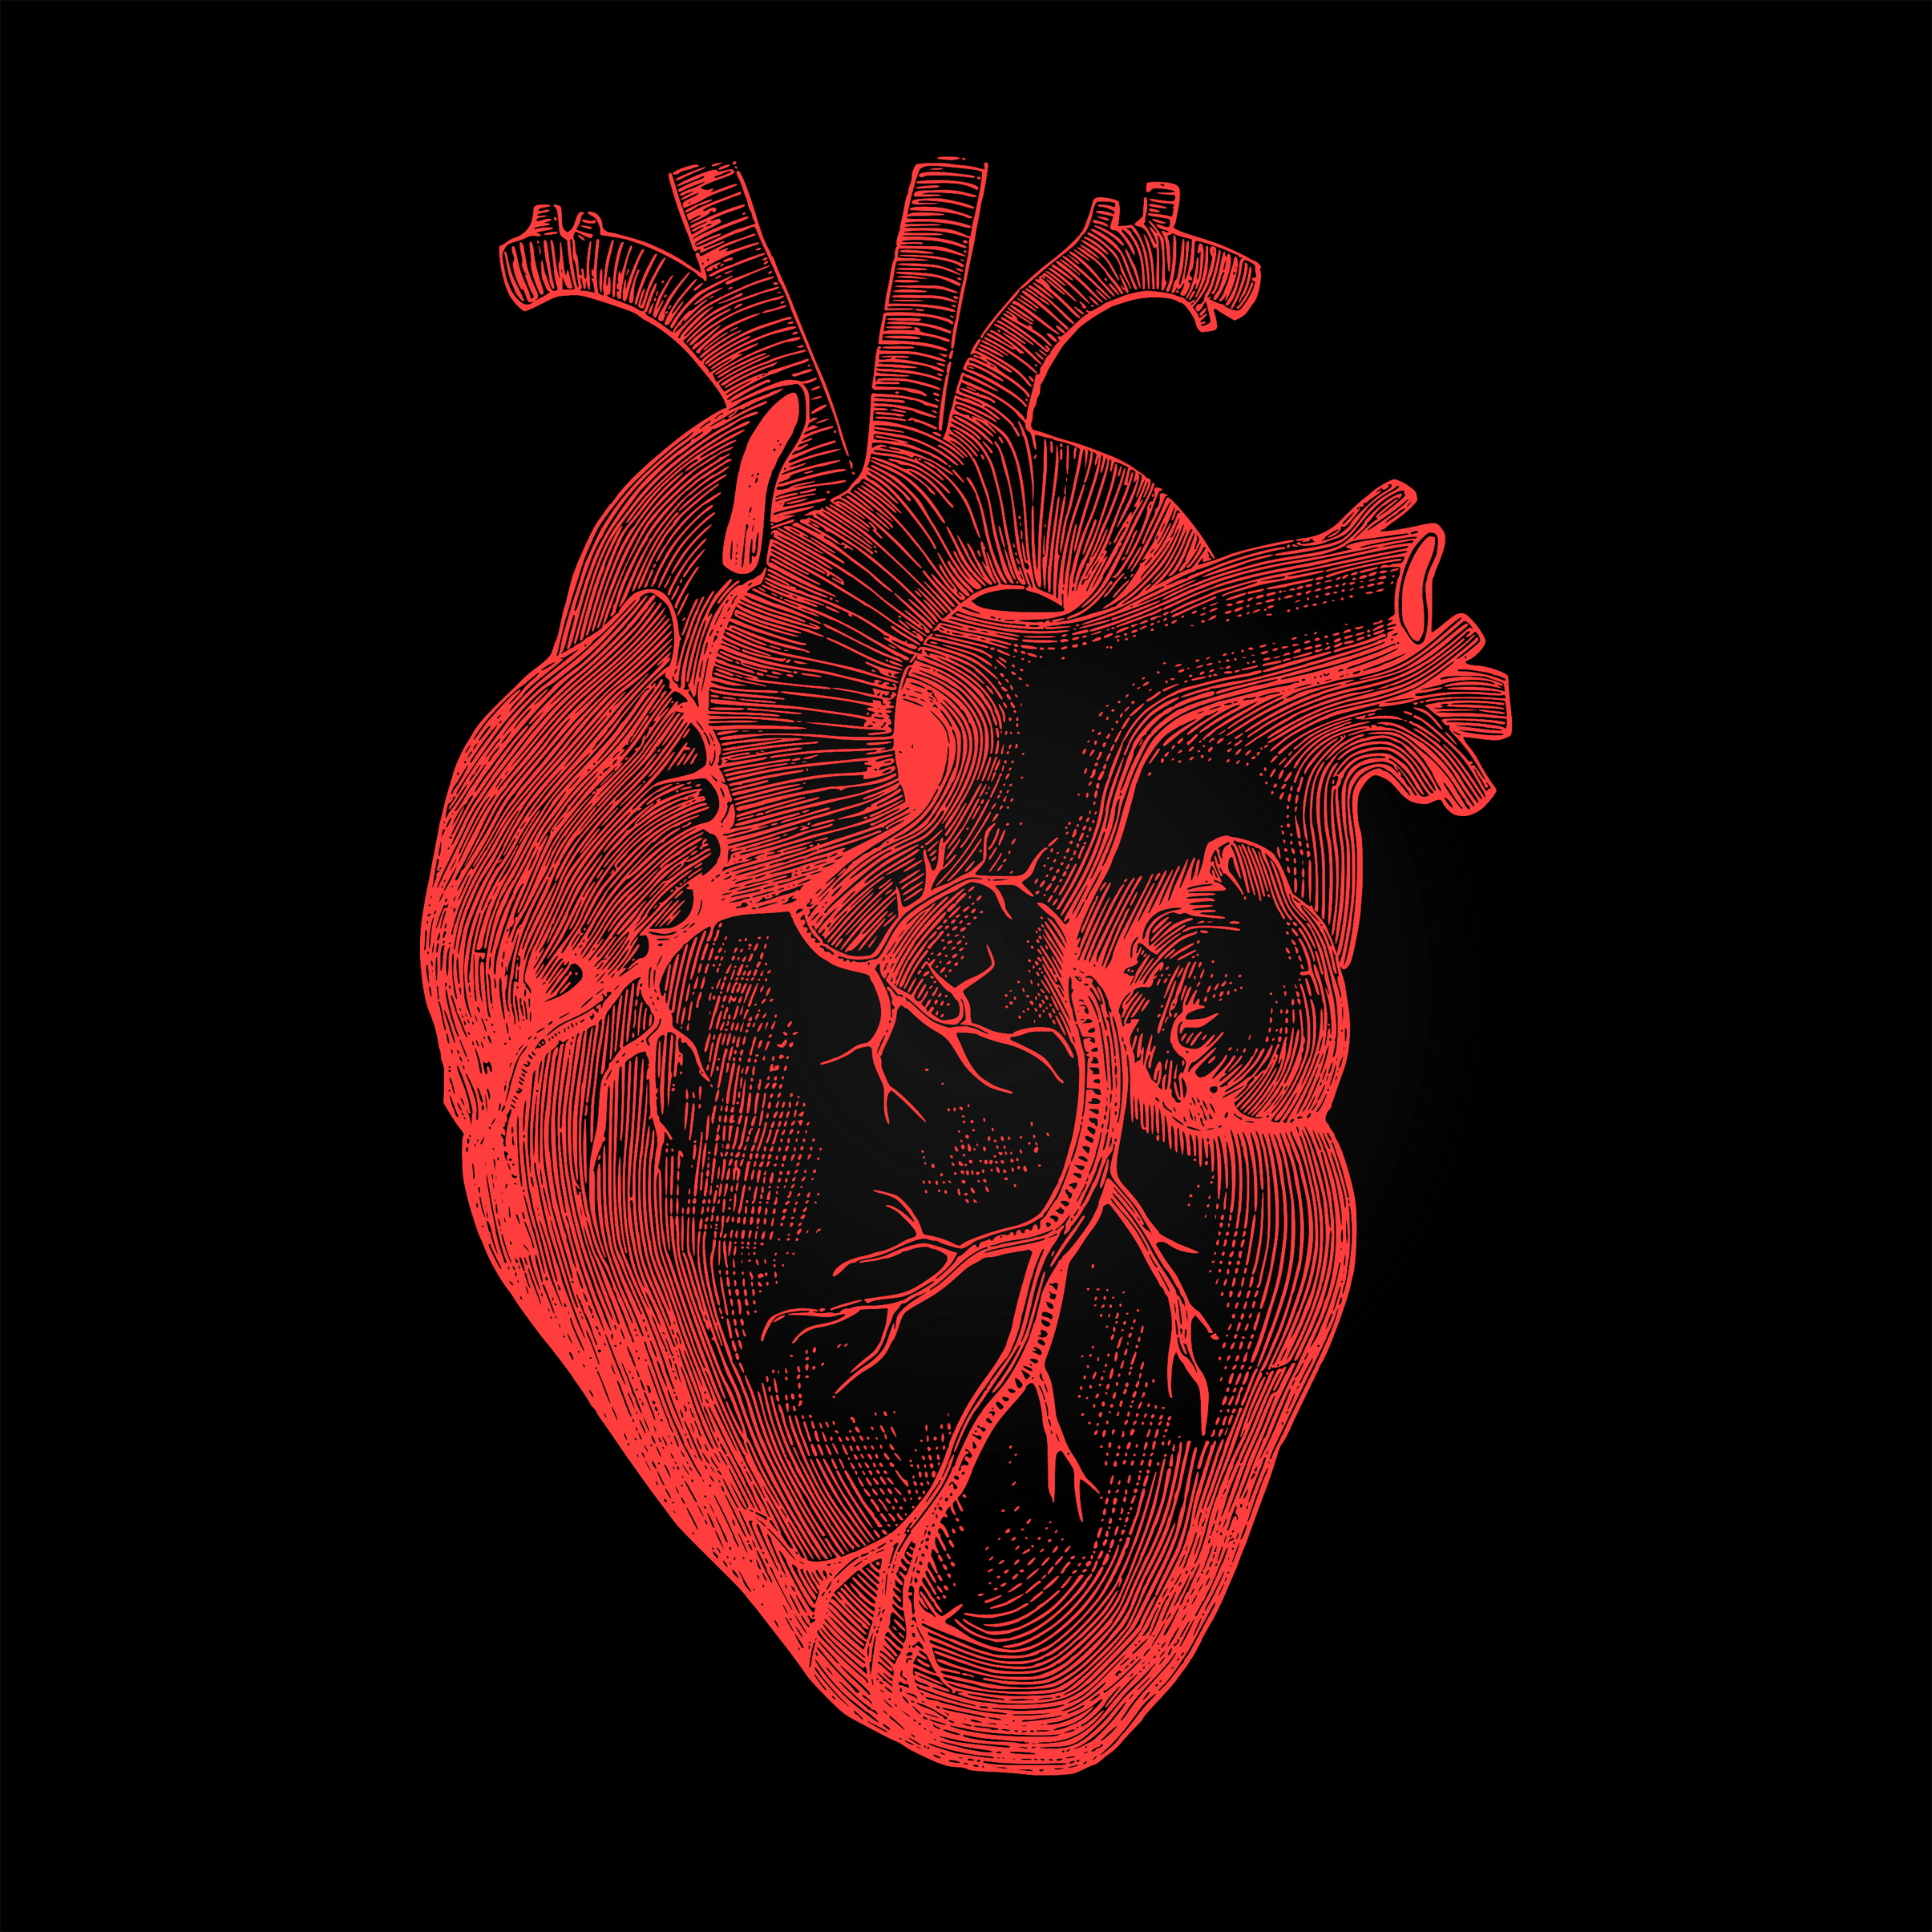 Free photo: Human Heart - Anatomical Rendering on Dark ...